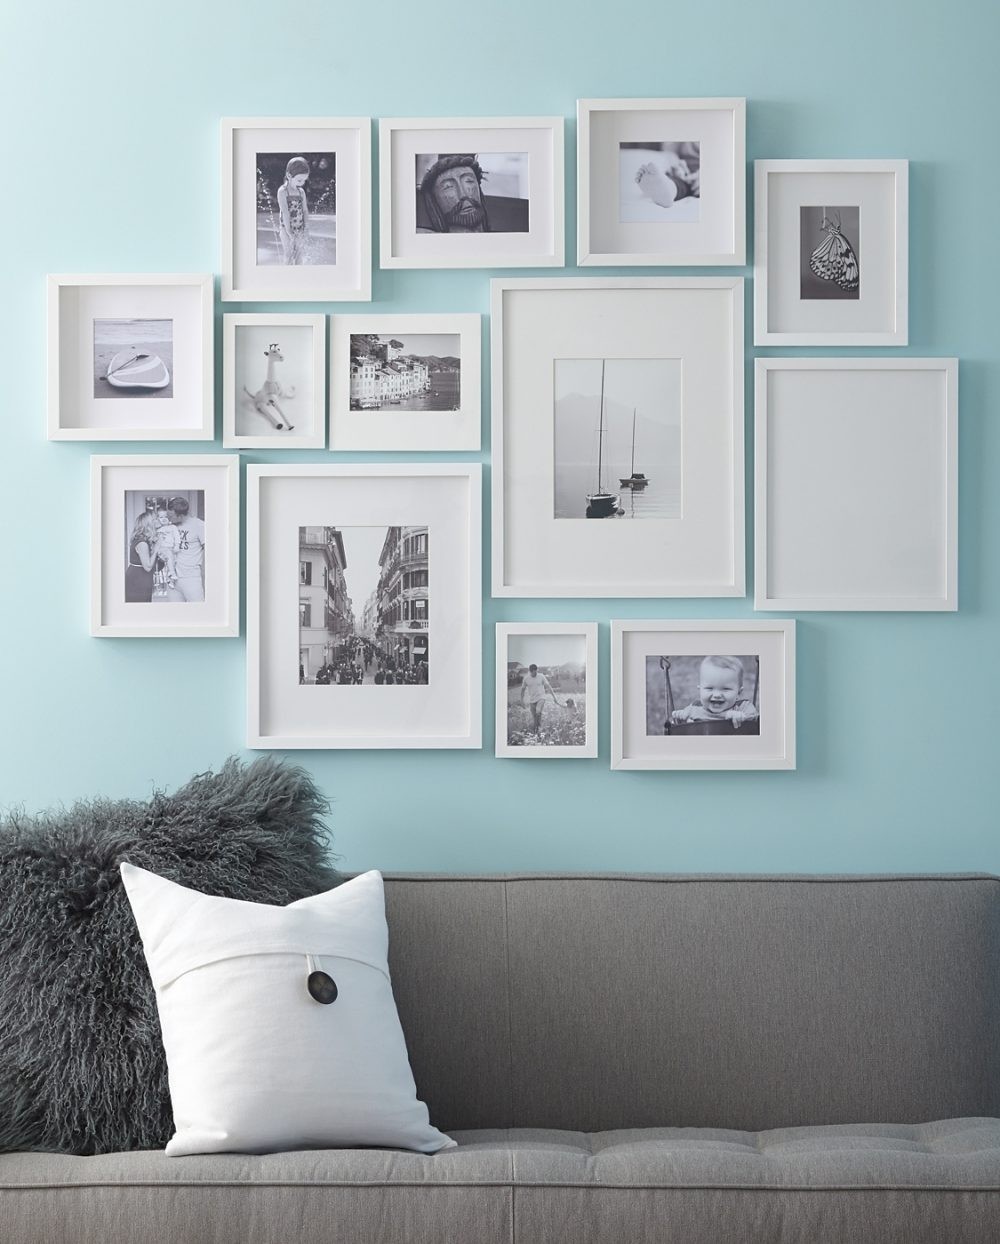 Gallery Wall: Create an eye-catching gallery of your own photography. Use black-and-white prints and white frames hung close together to create a cohesive focal point. Move framed art around on a flat surface to find the best arrangement before mounting photos on a wall.